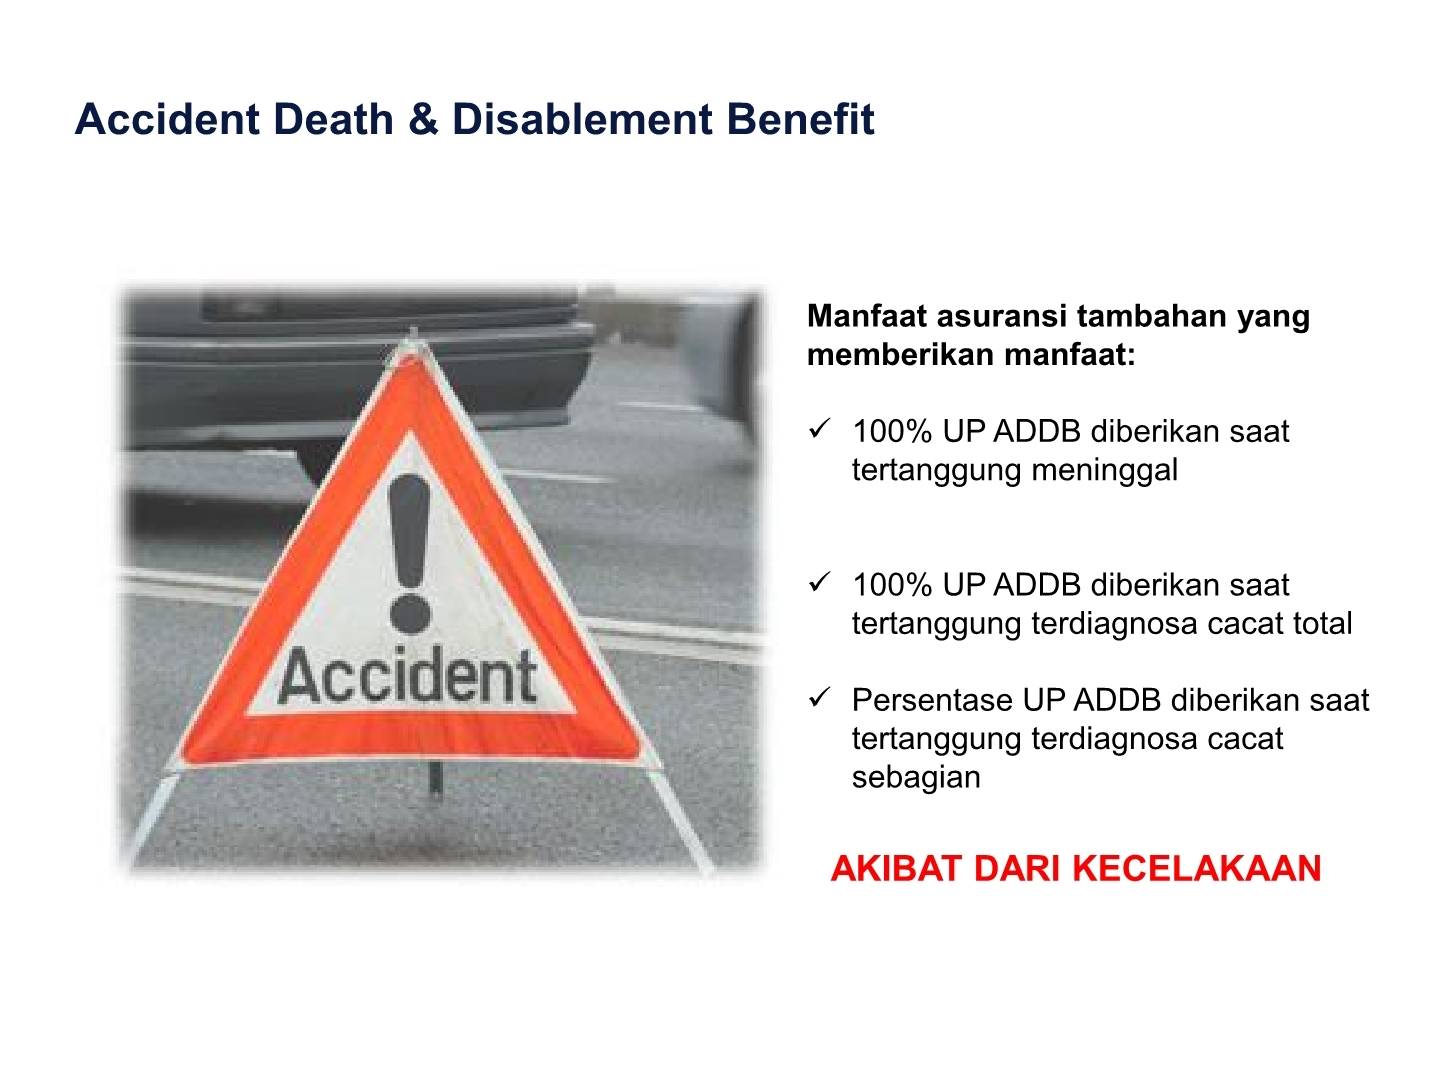 accidental death and disability benefit